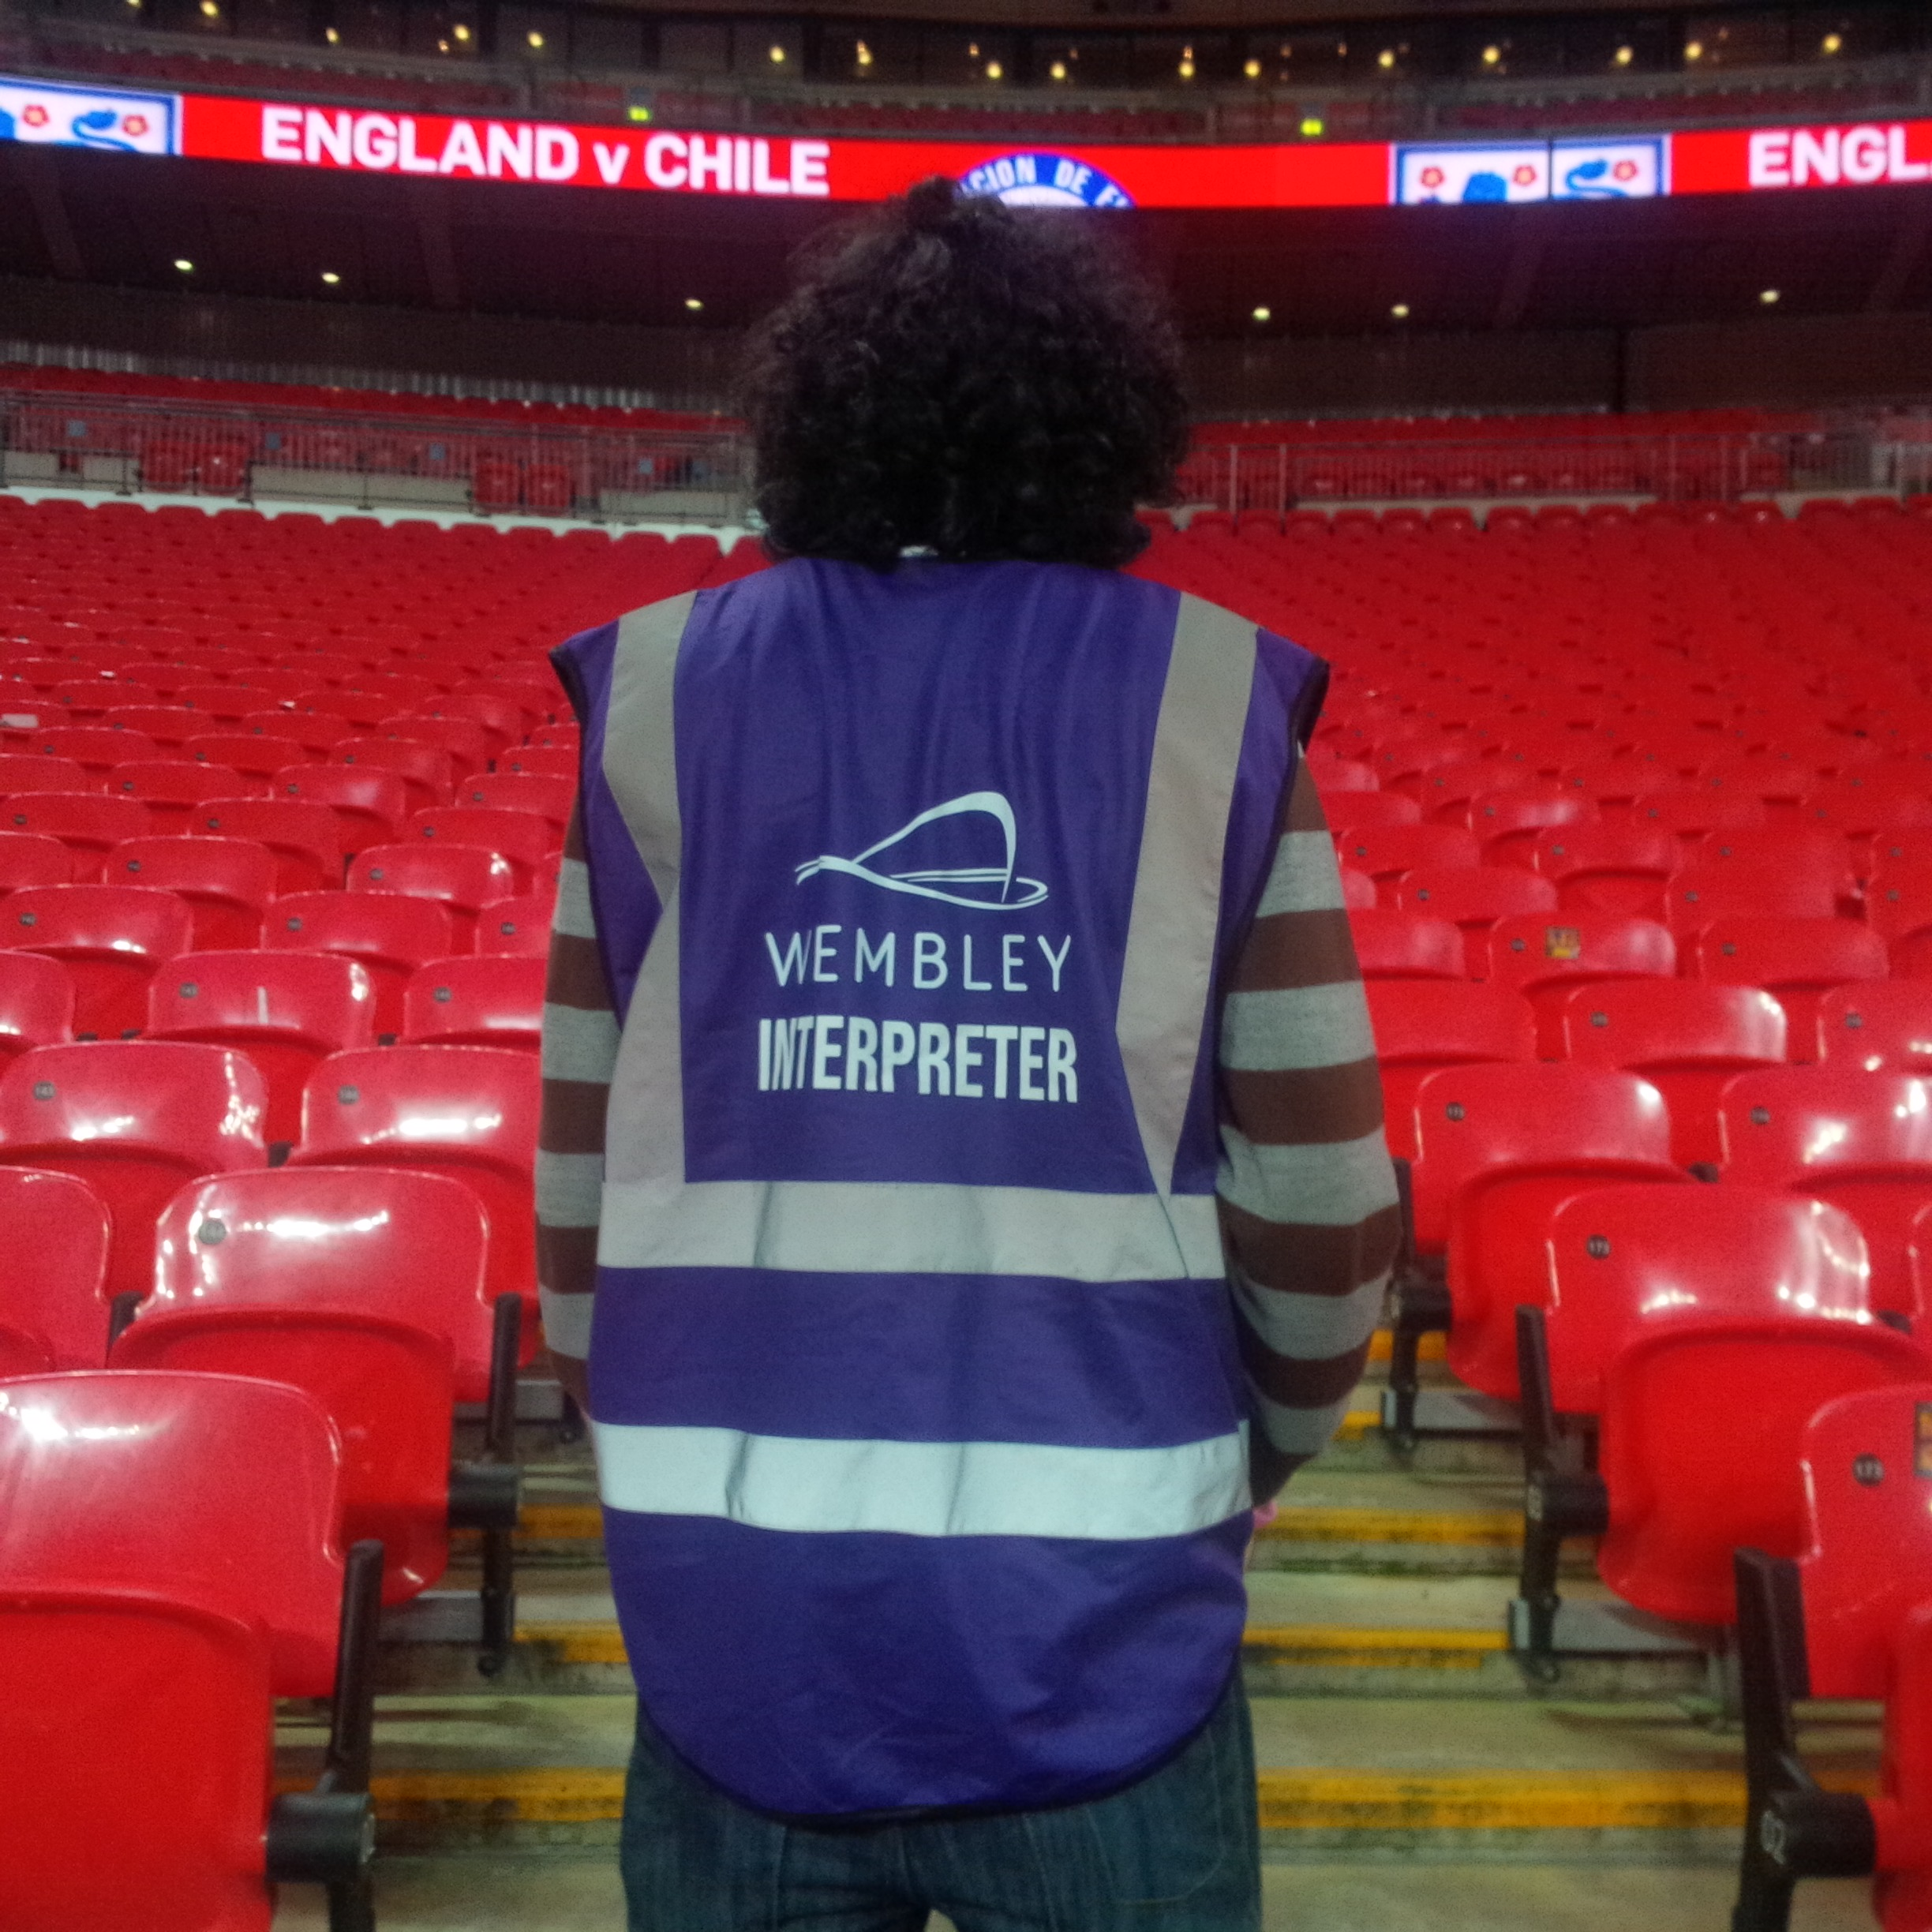 Working as a Spanish football turnstile interpreter at England V Chile